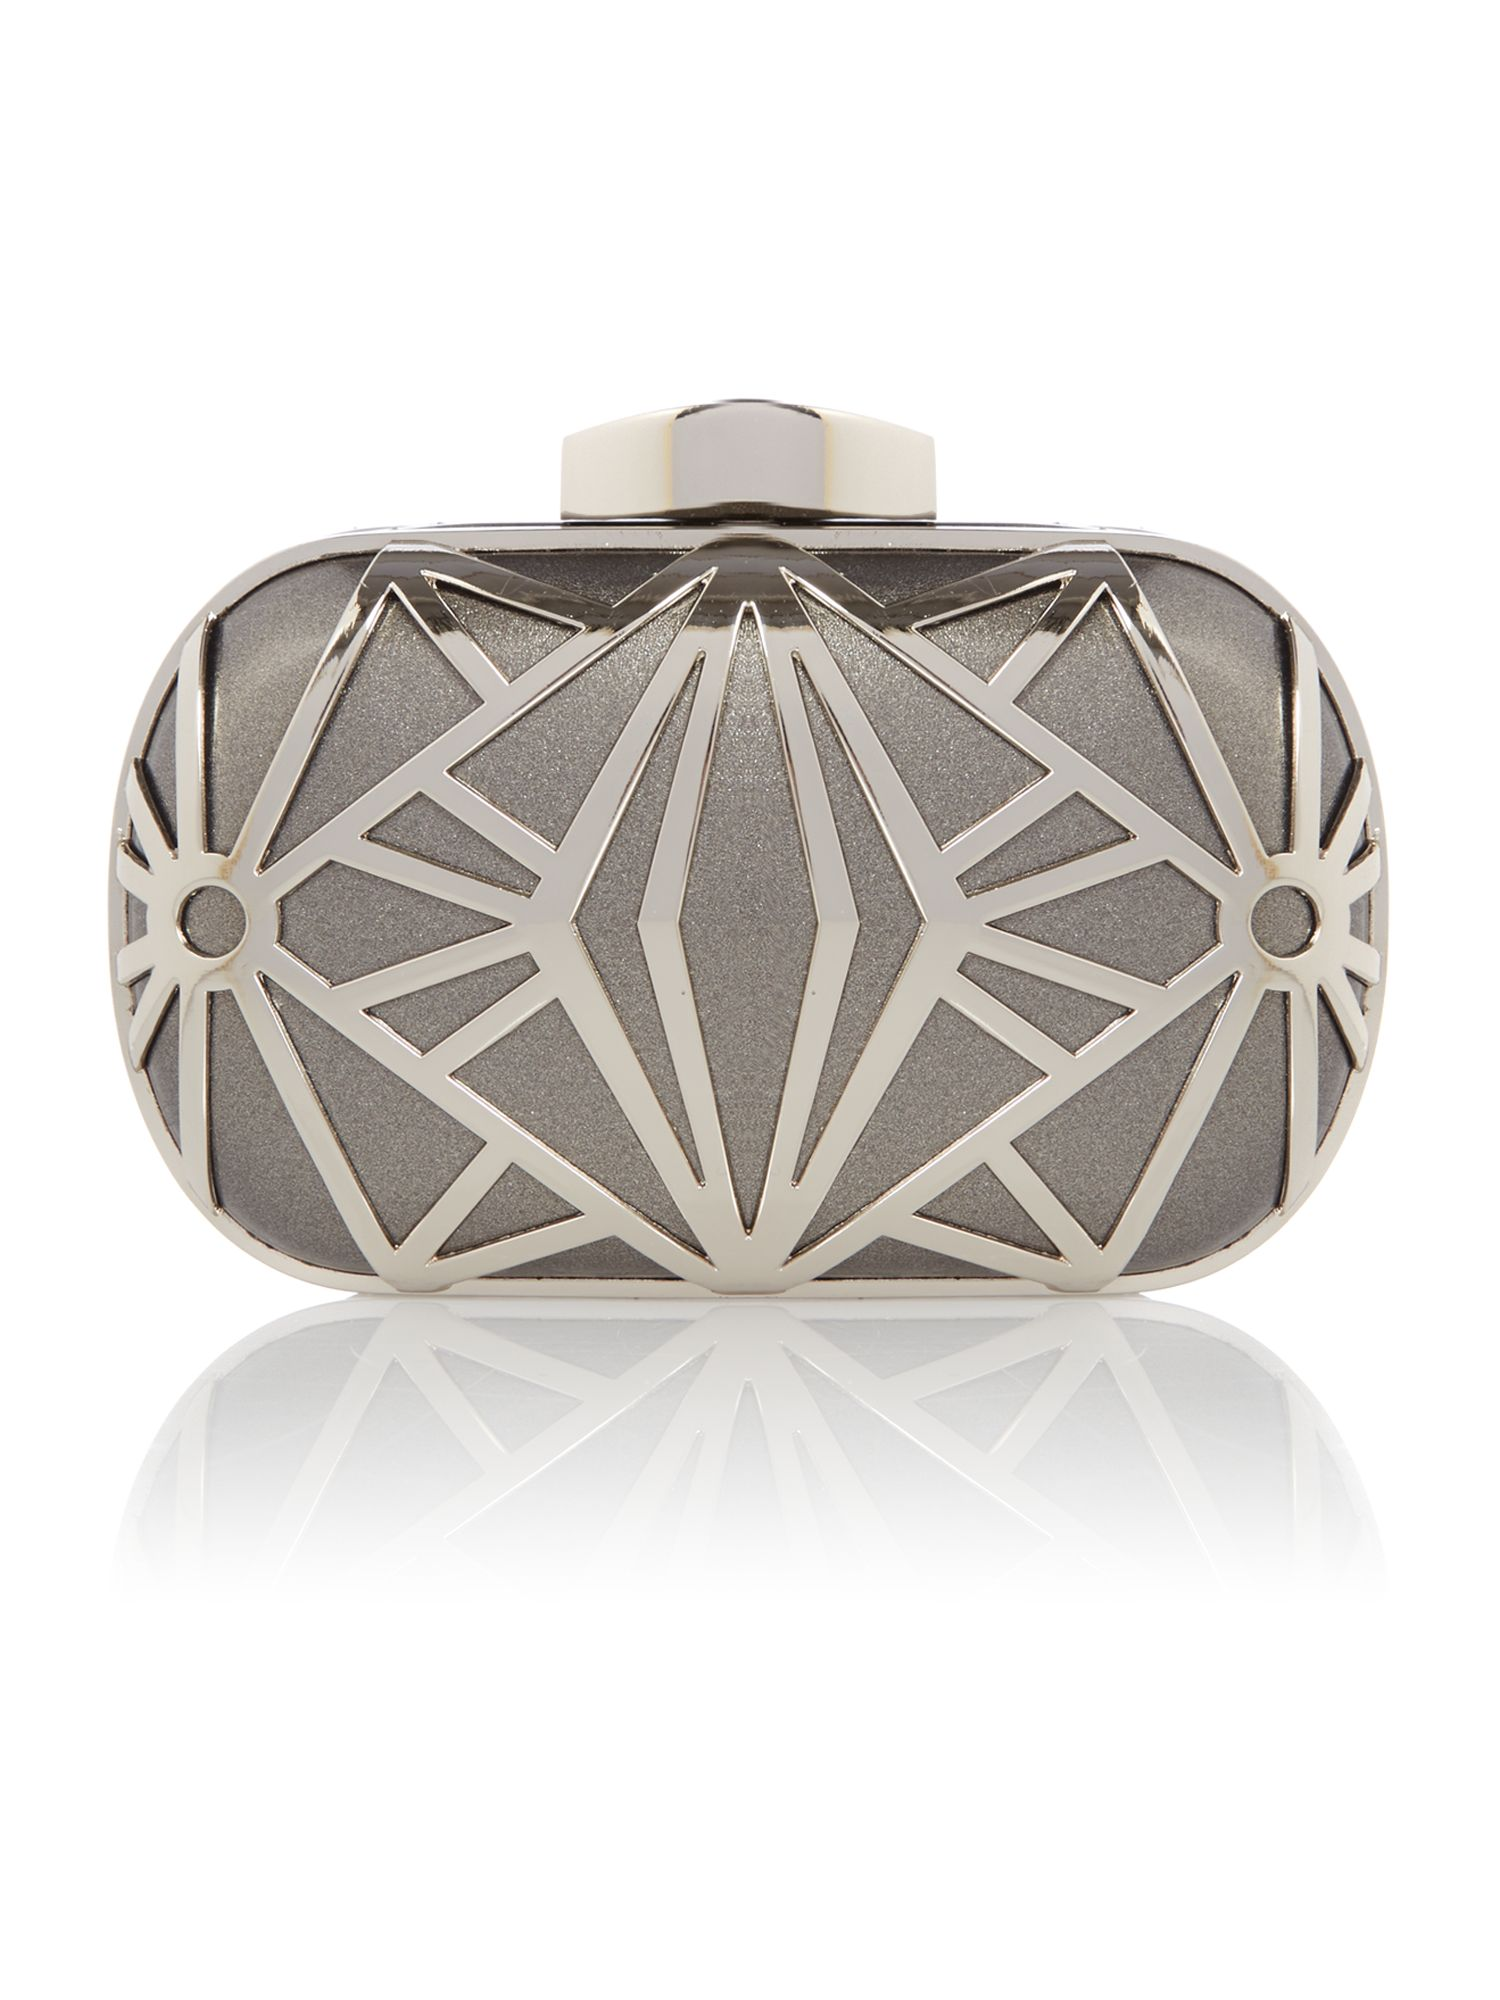 Deco box clutch